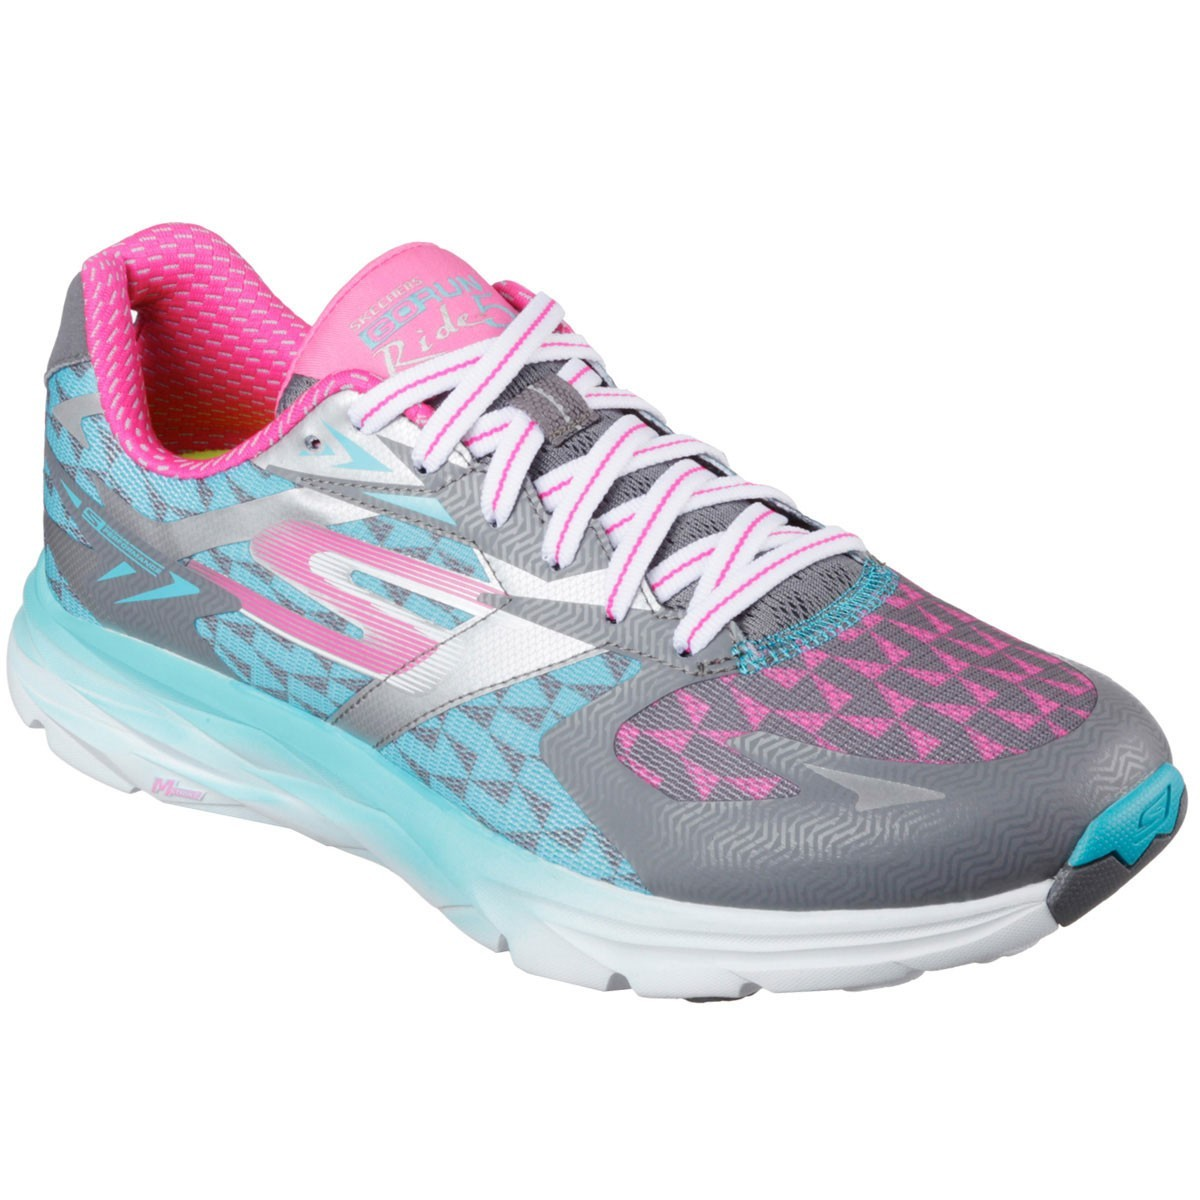 skechers 2016 womens go run ride 5 running shoes sports